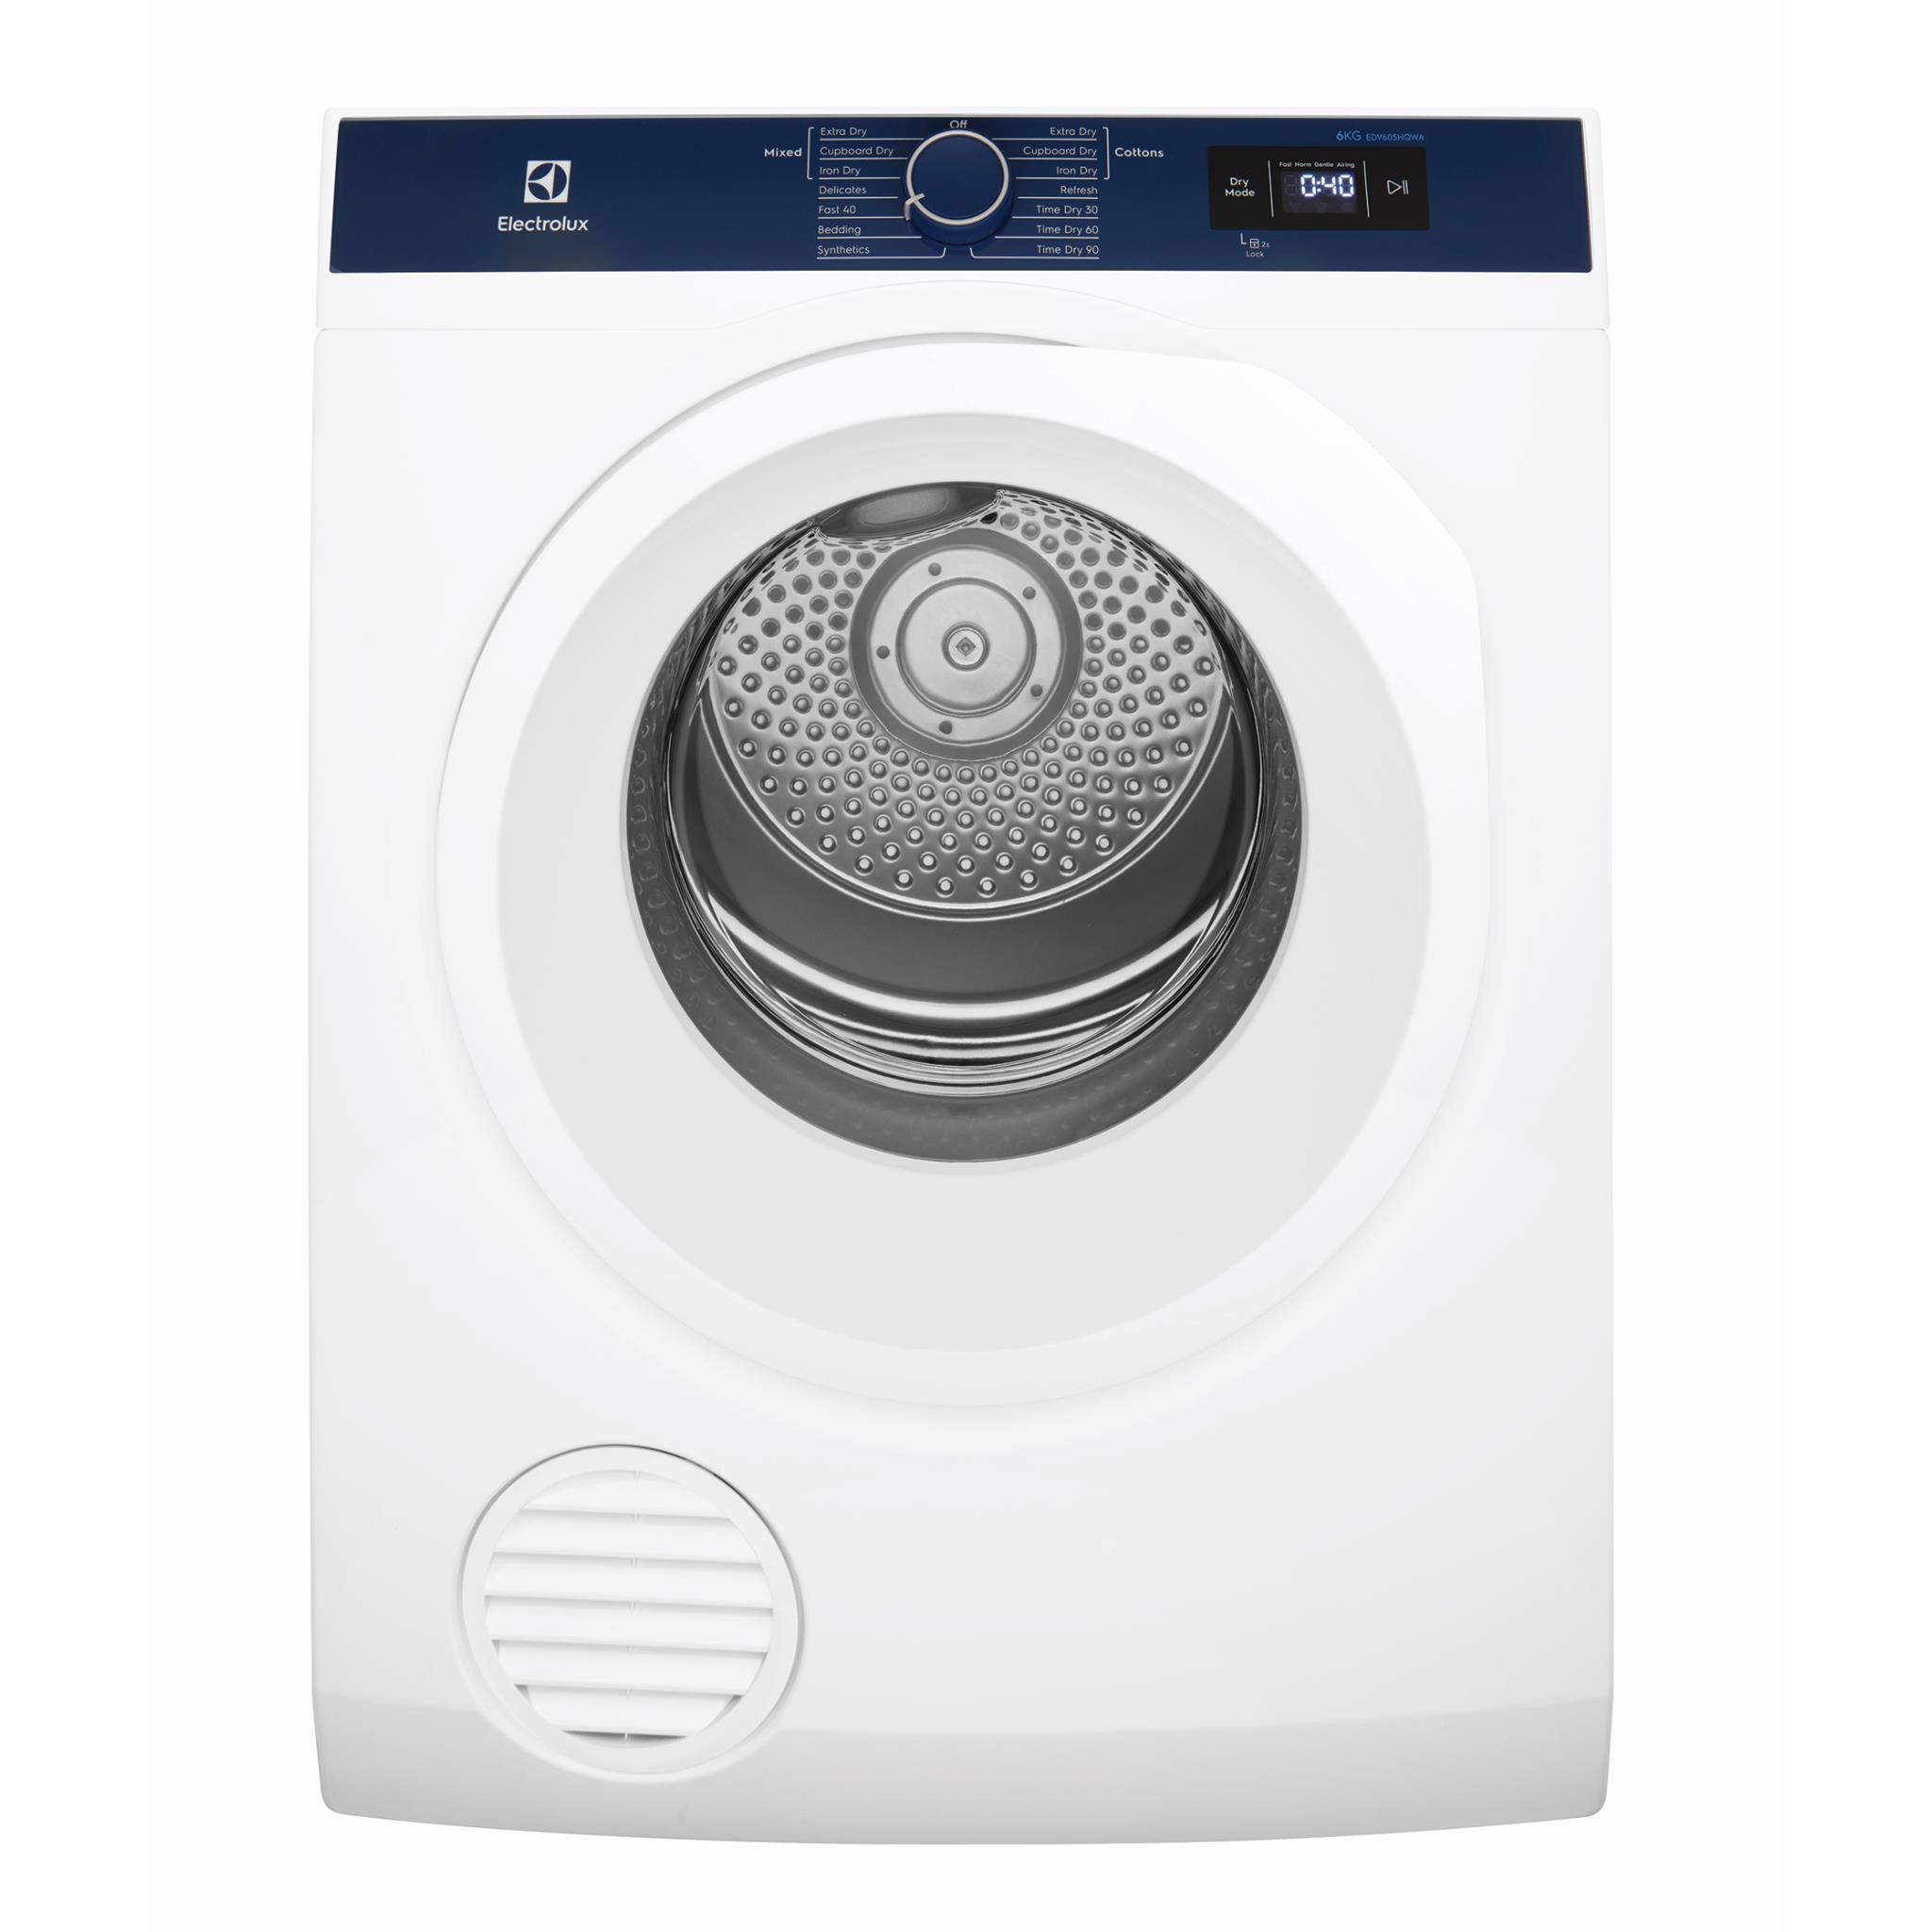 Electrolux EDV605HQWA 6kg Auto Vented Dryer